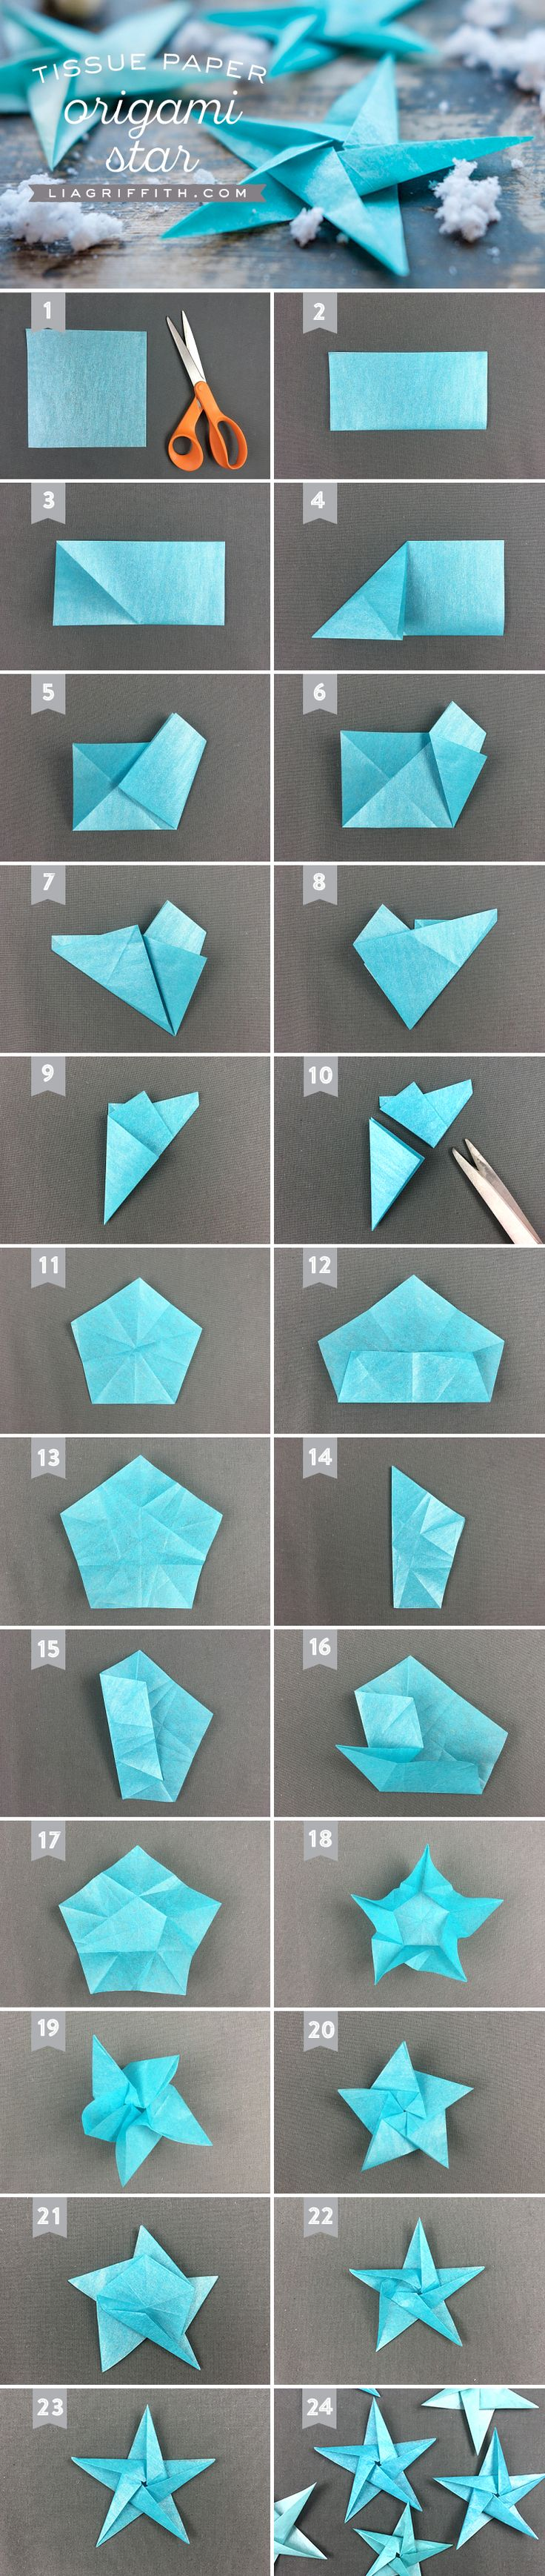 Tissue Star Origami Christmas Ornaments | Lia Griffith